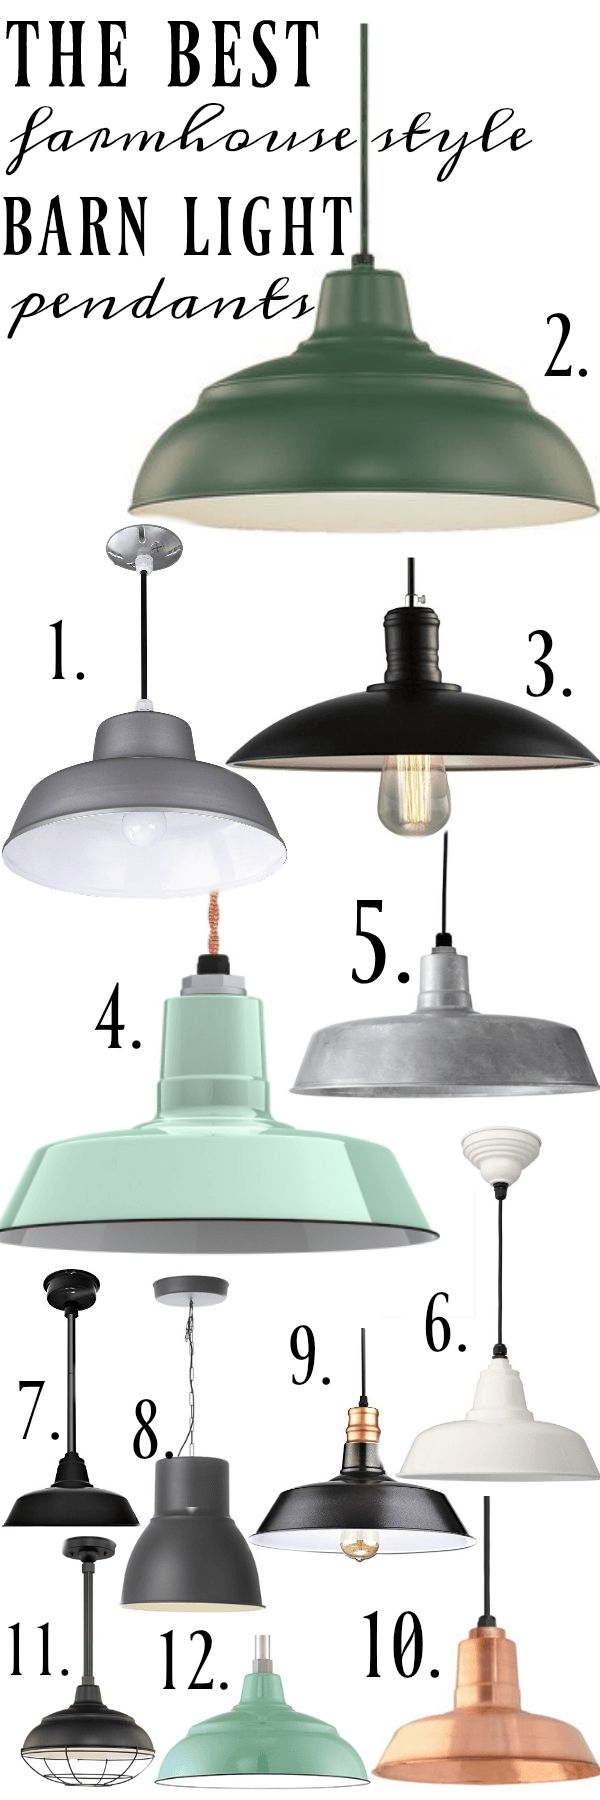 kitchen sink lighting farmhouse kitchen lighting fixtures Farmhouse Barn Light Pendants